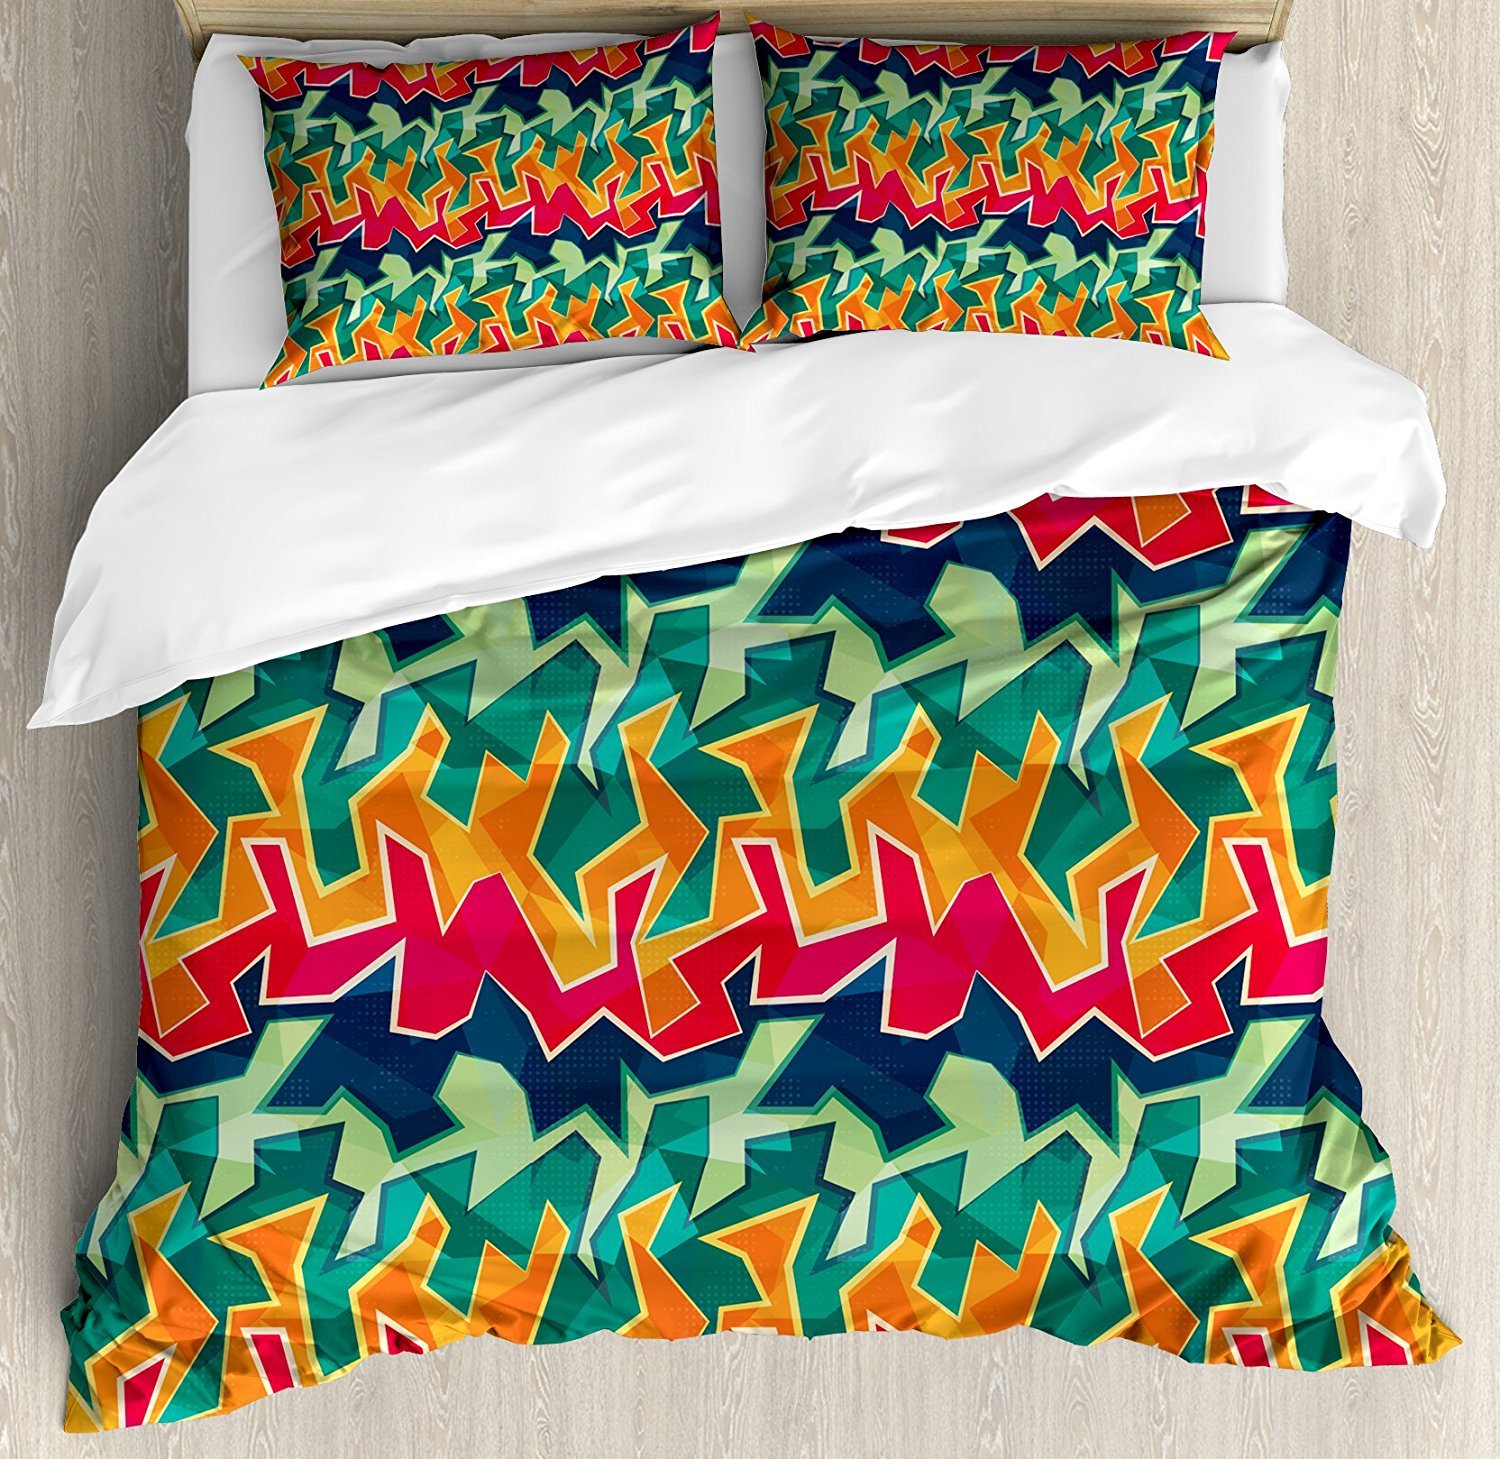 Grunge Duvet Cover Set Colorful Graffiti Inspired Pattern Cool Crazy Funky Display Urban City Street Art Decorative Bedding In Sets From Home